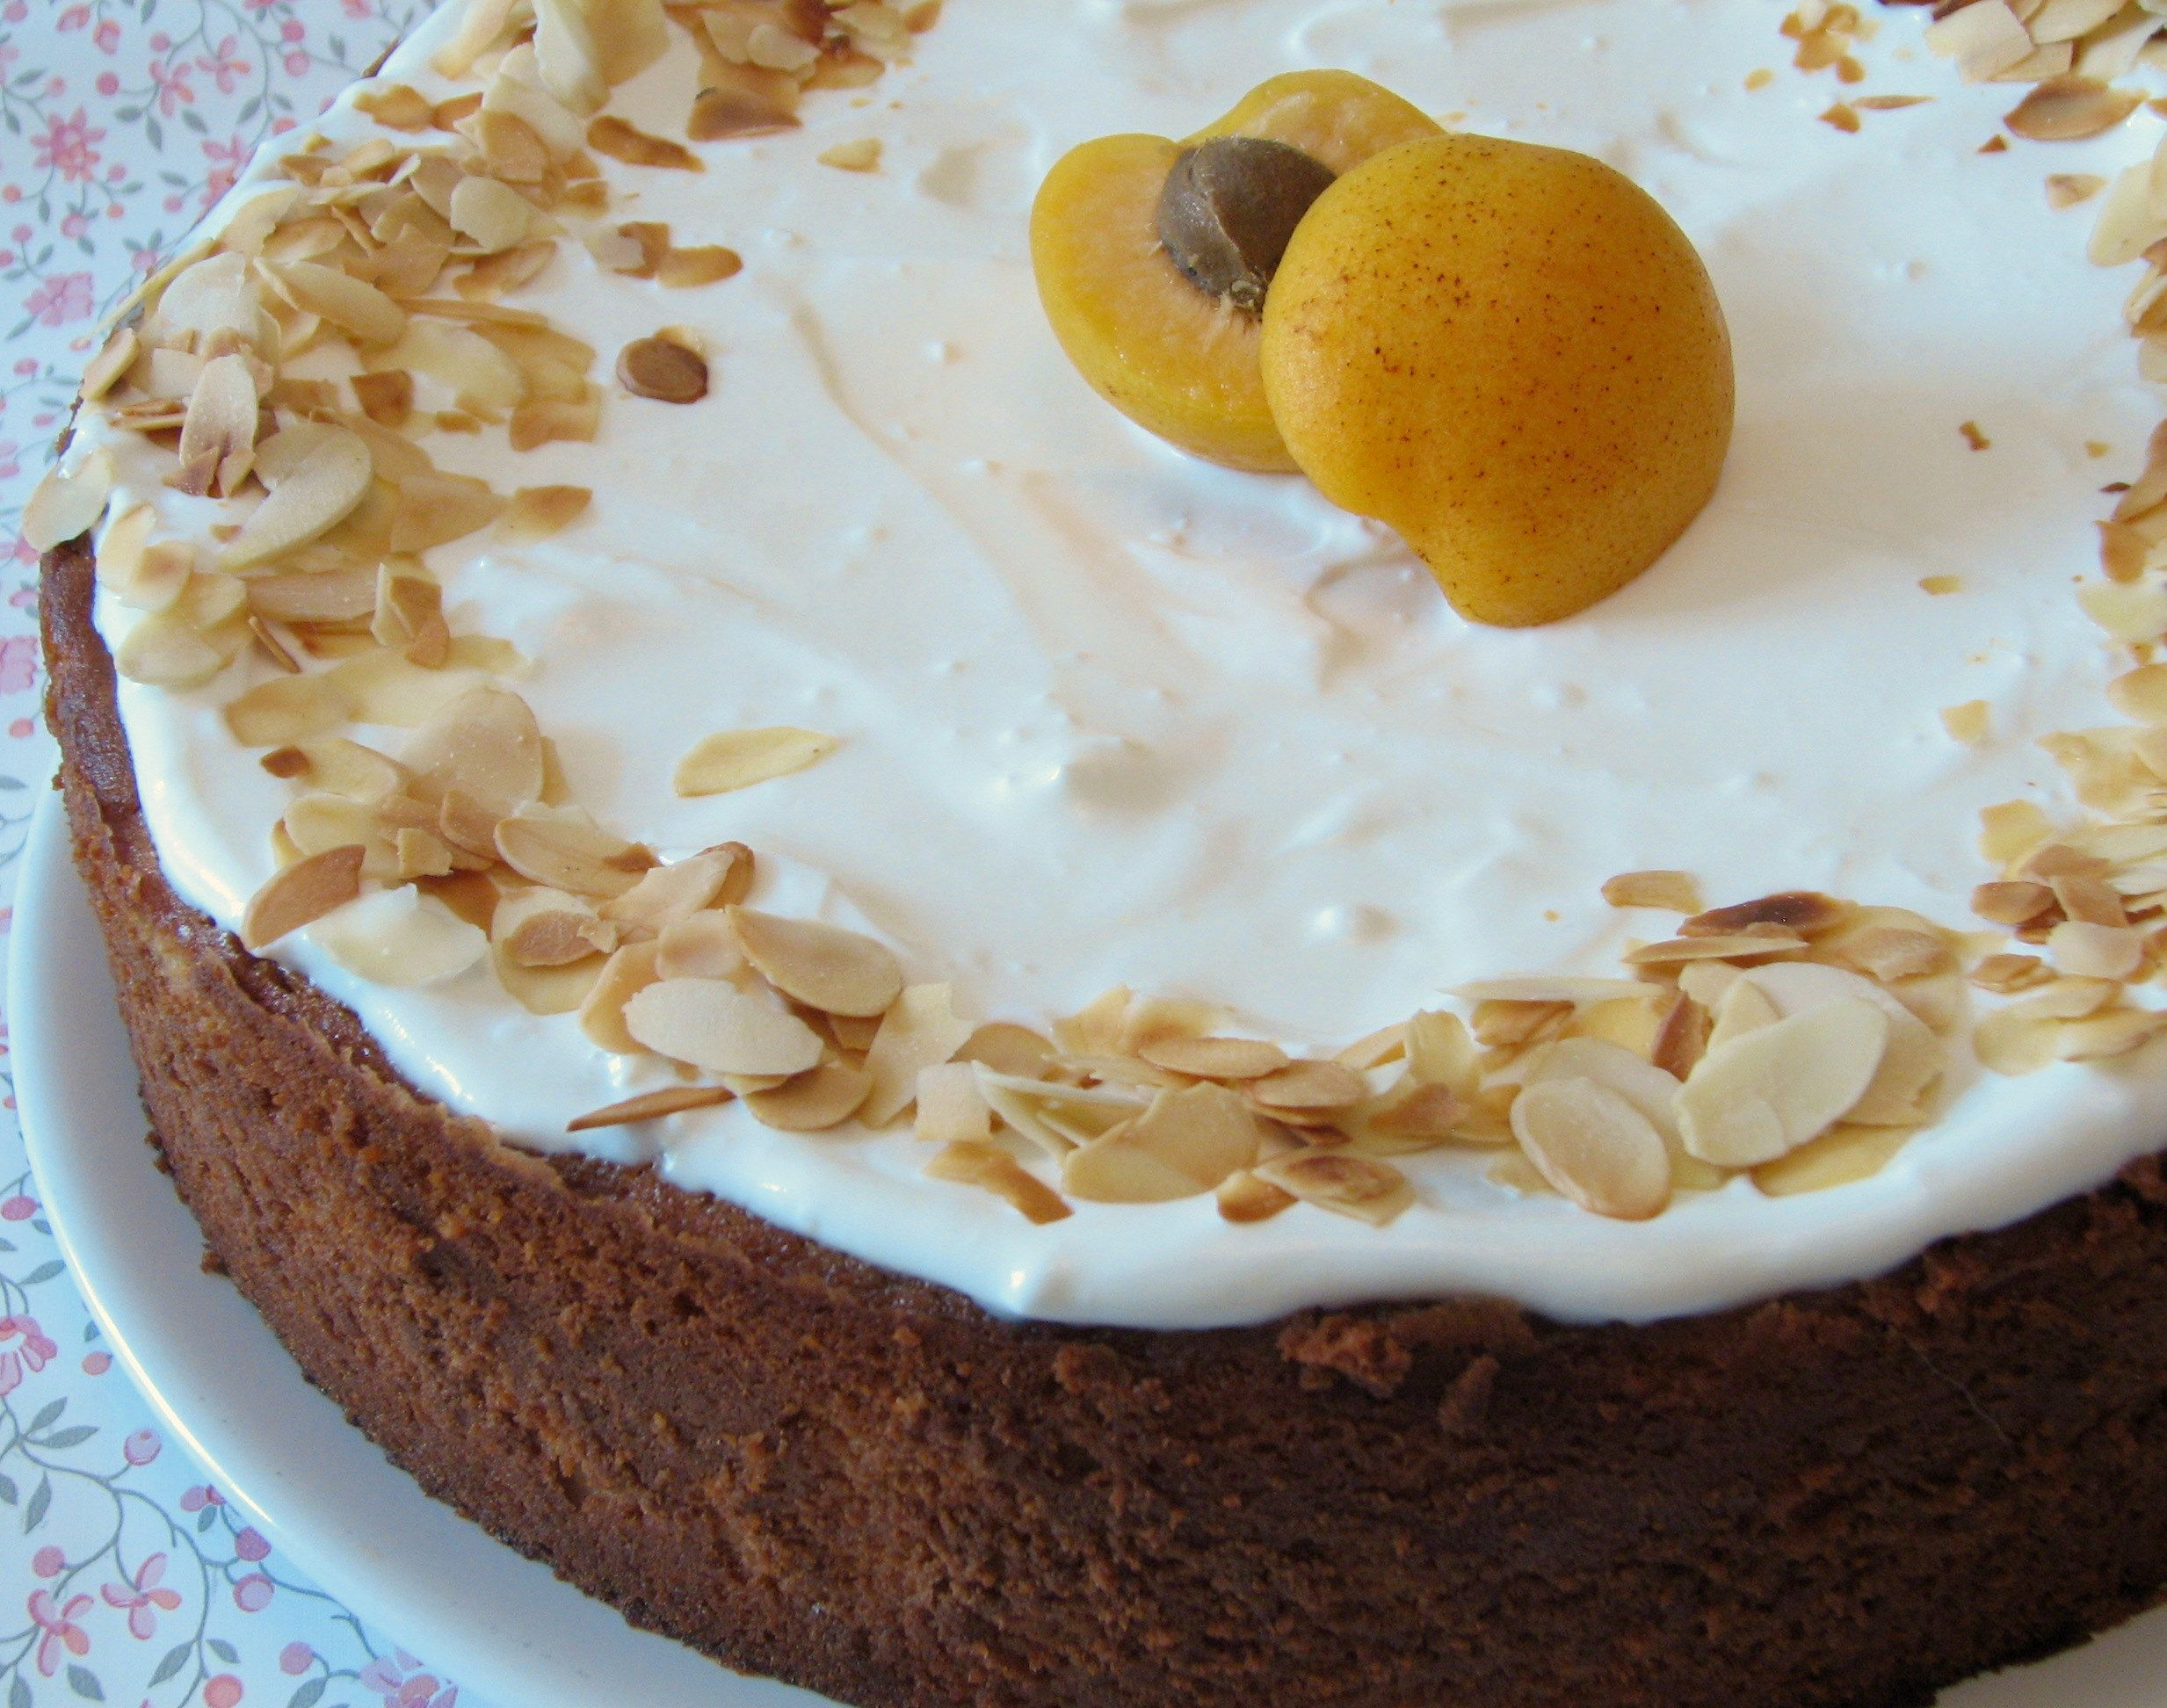 Almond, Apricots and Ricotta Cake